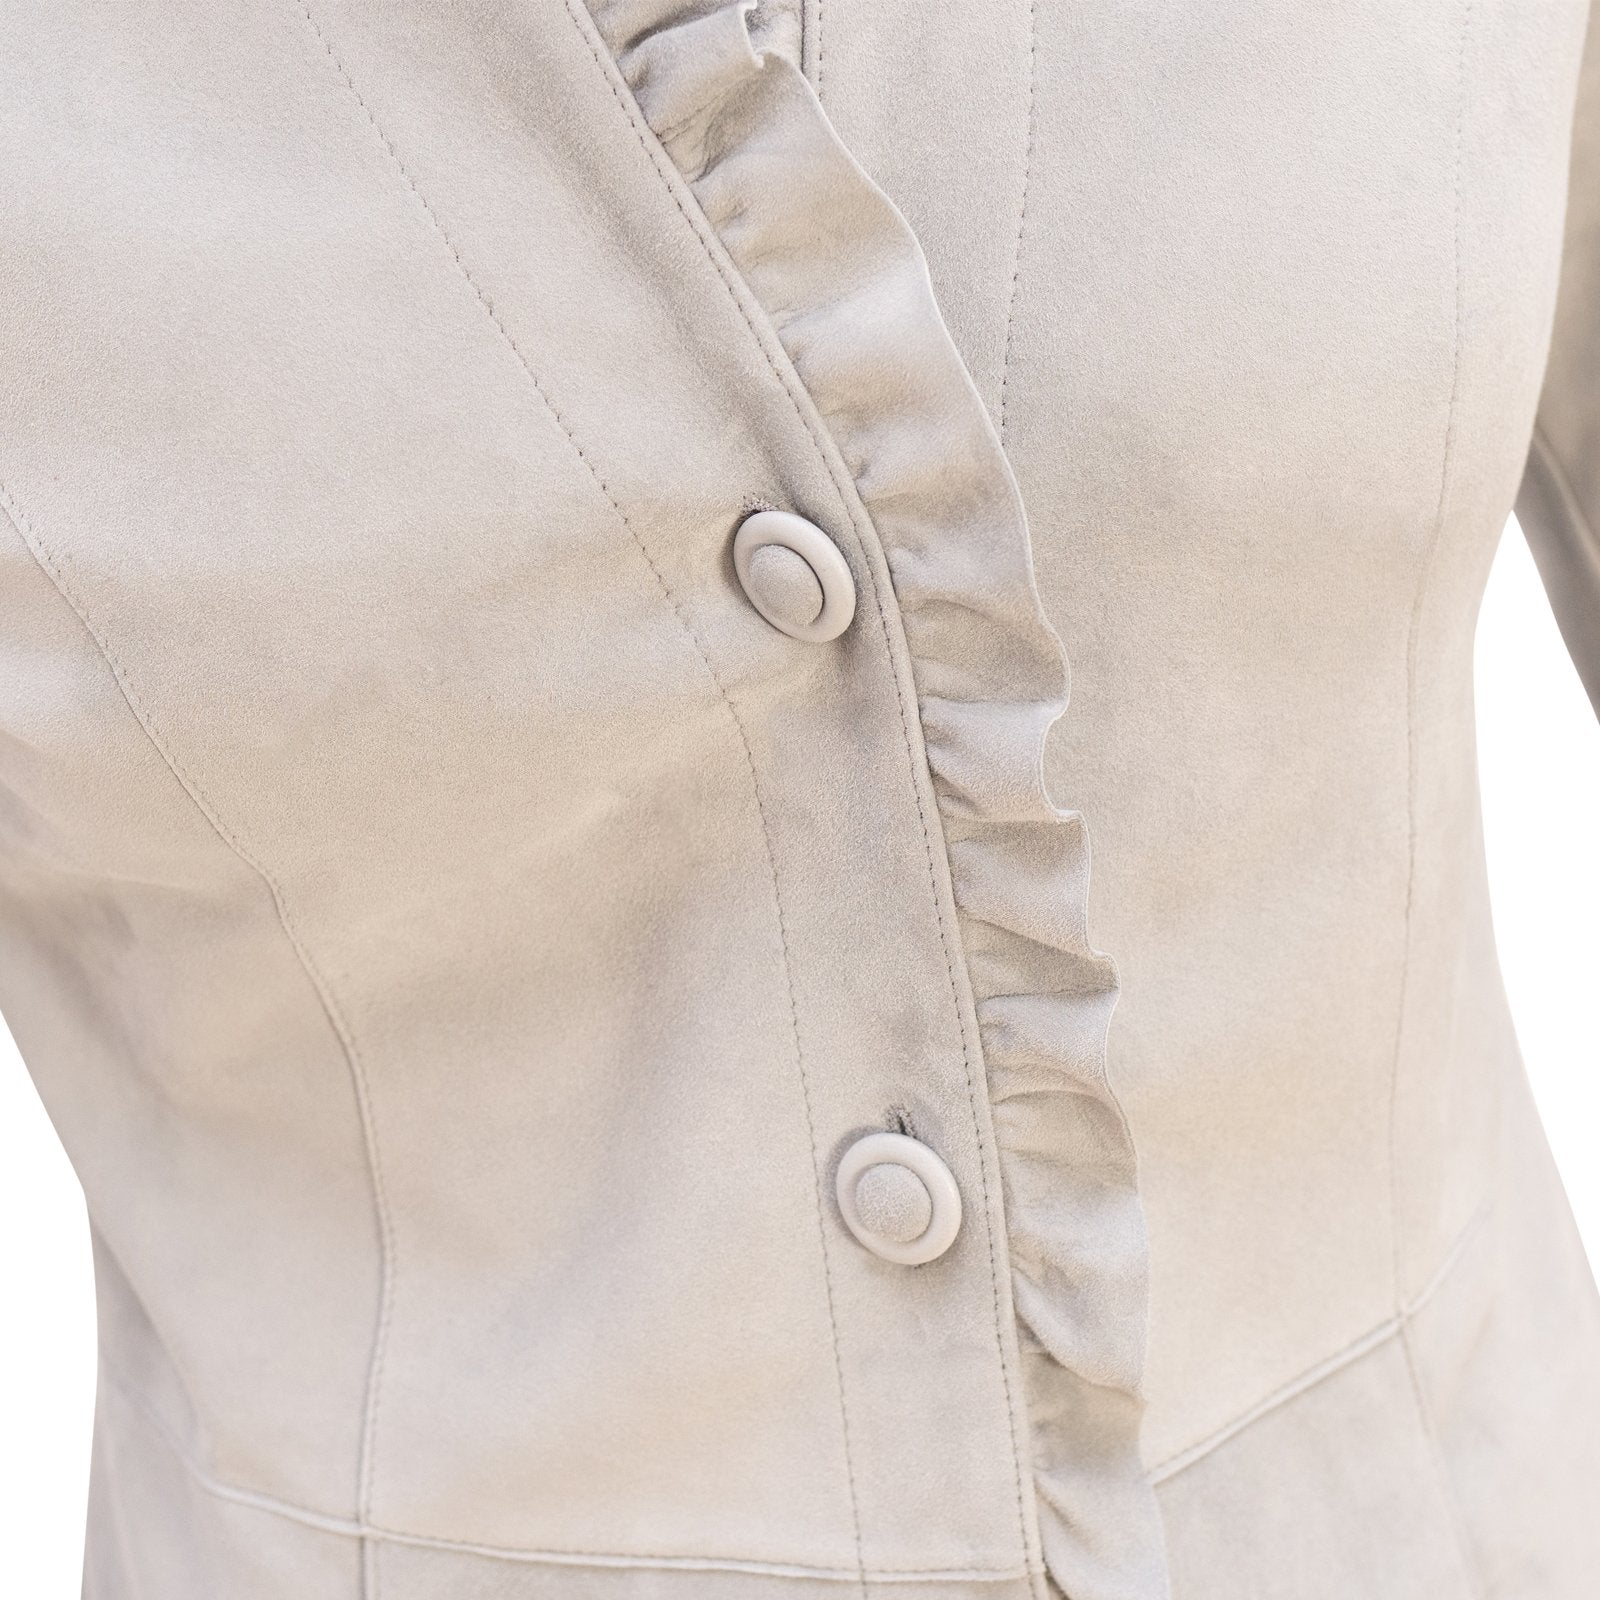 Women Reversible Leather Coat with Ruffles in Ice - Jennifer Tattanelli